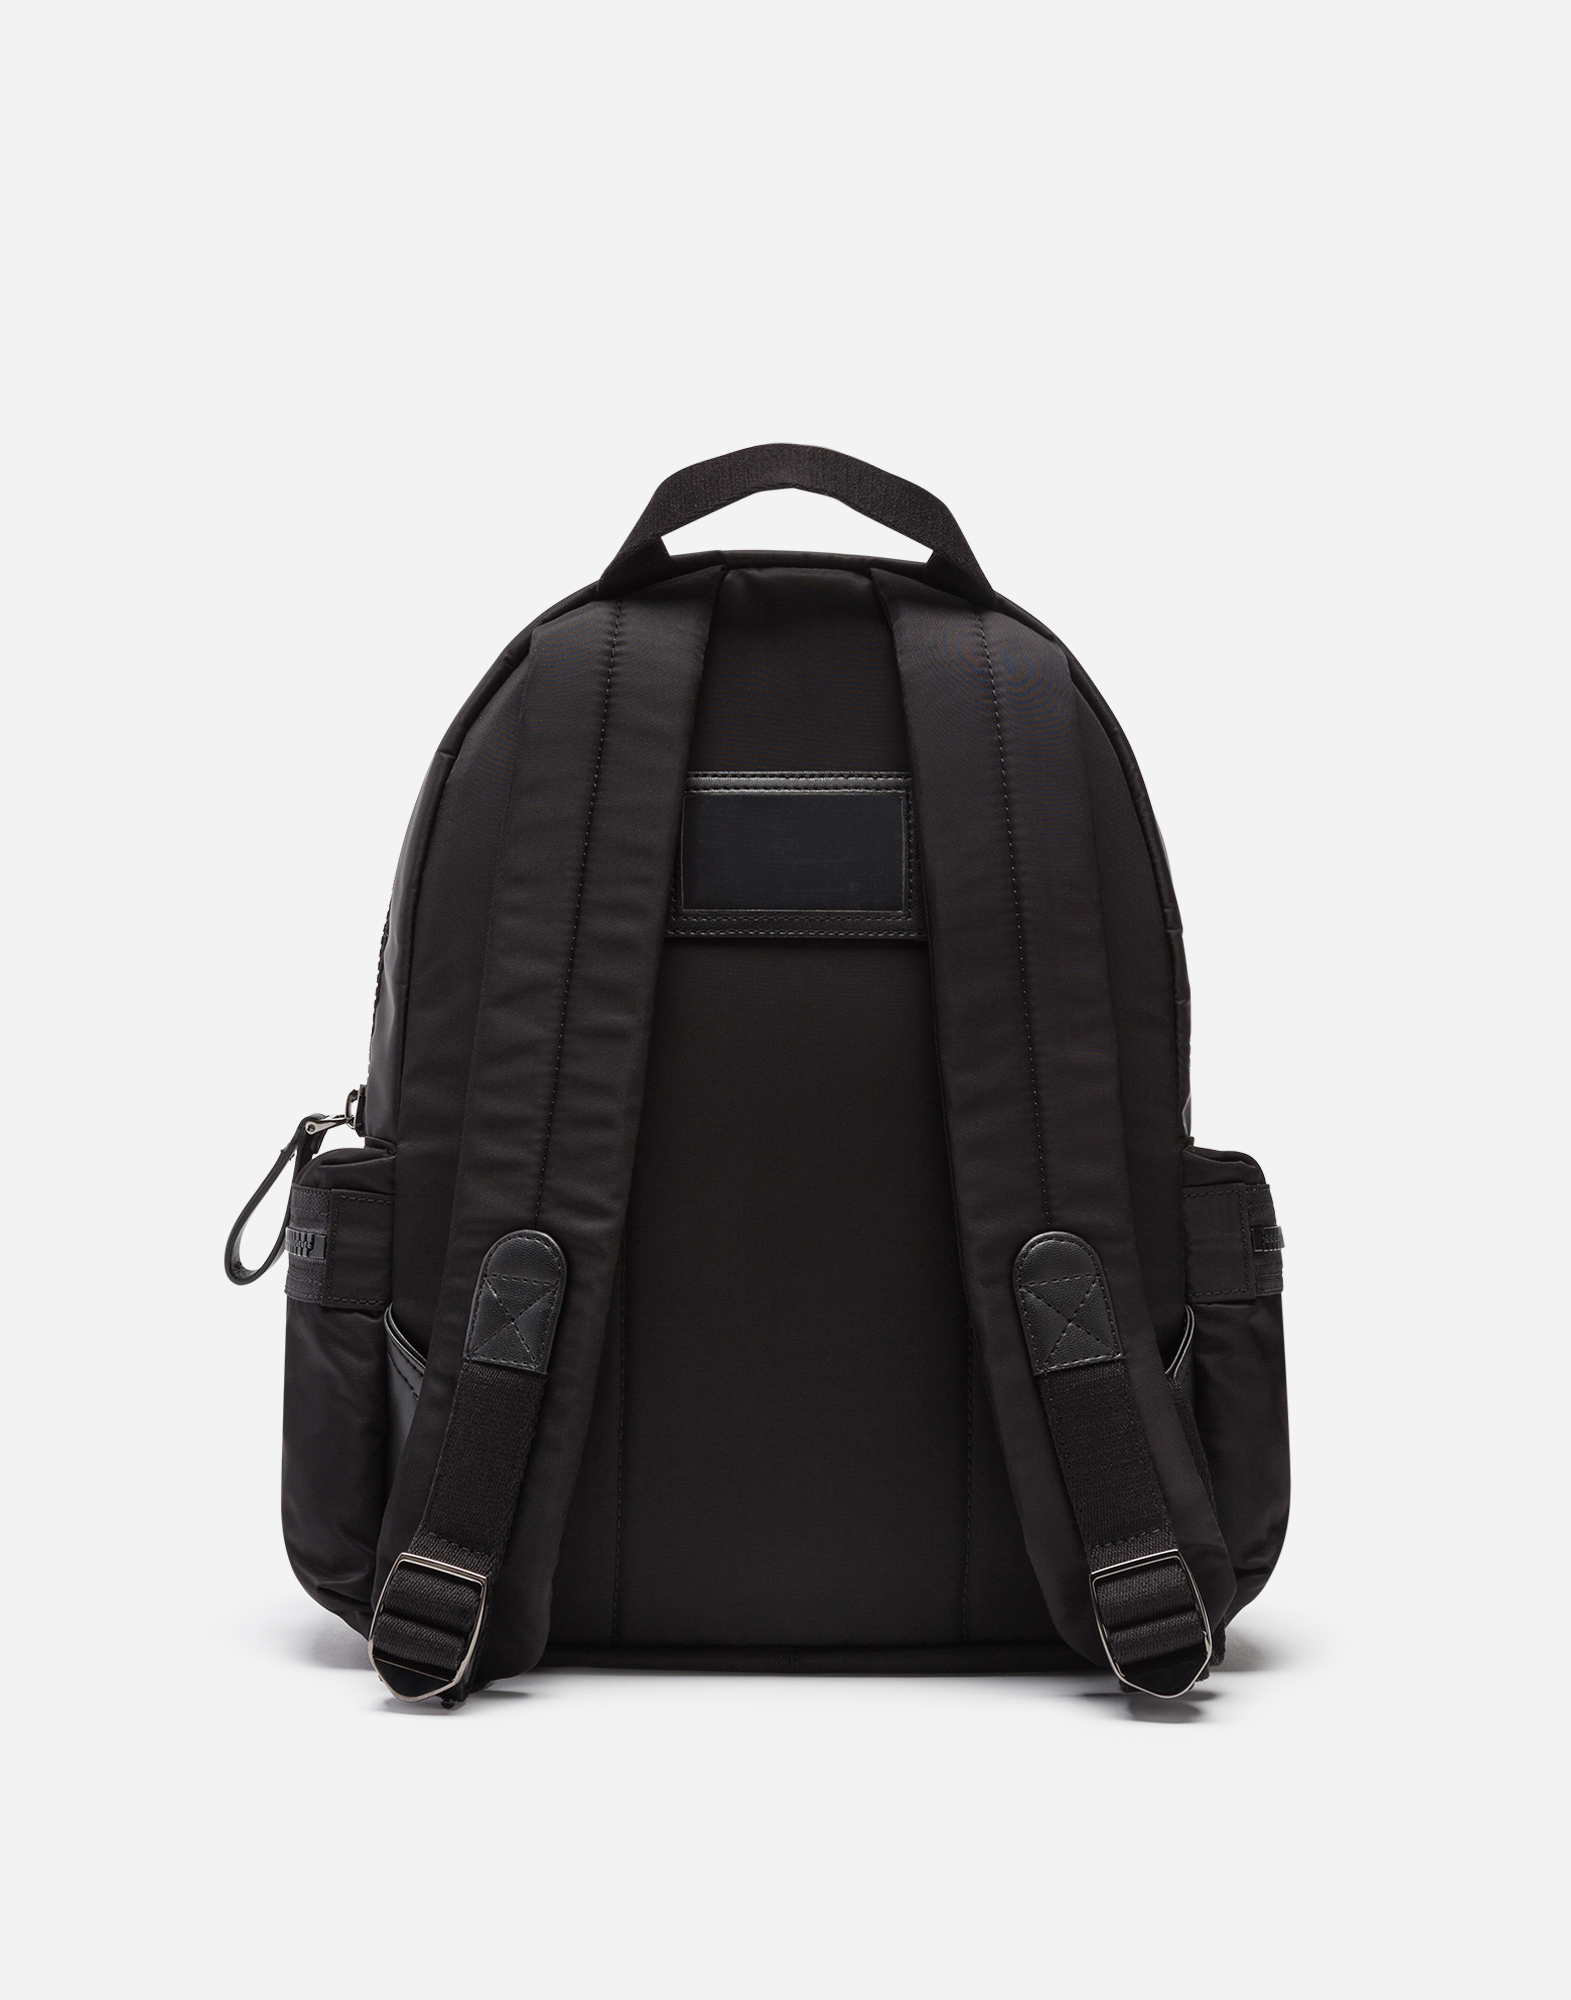 Dolce&Gabbana NYLON BACKPACK WITH LOGO